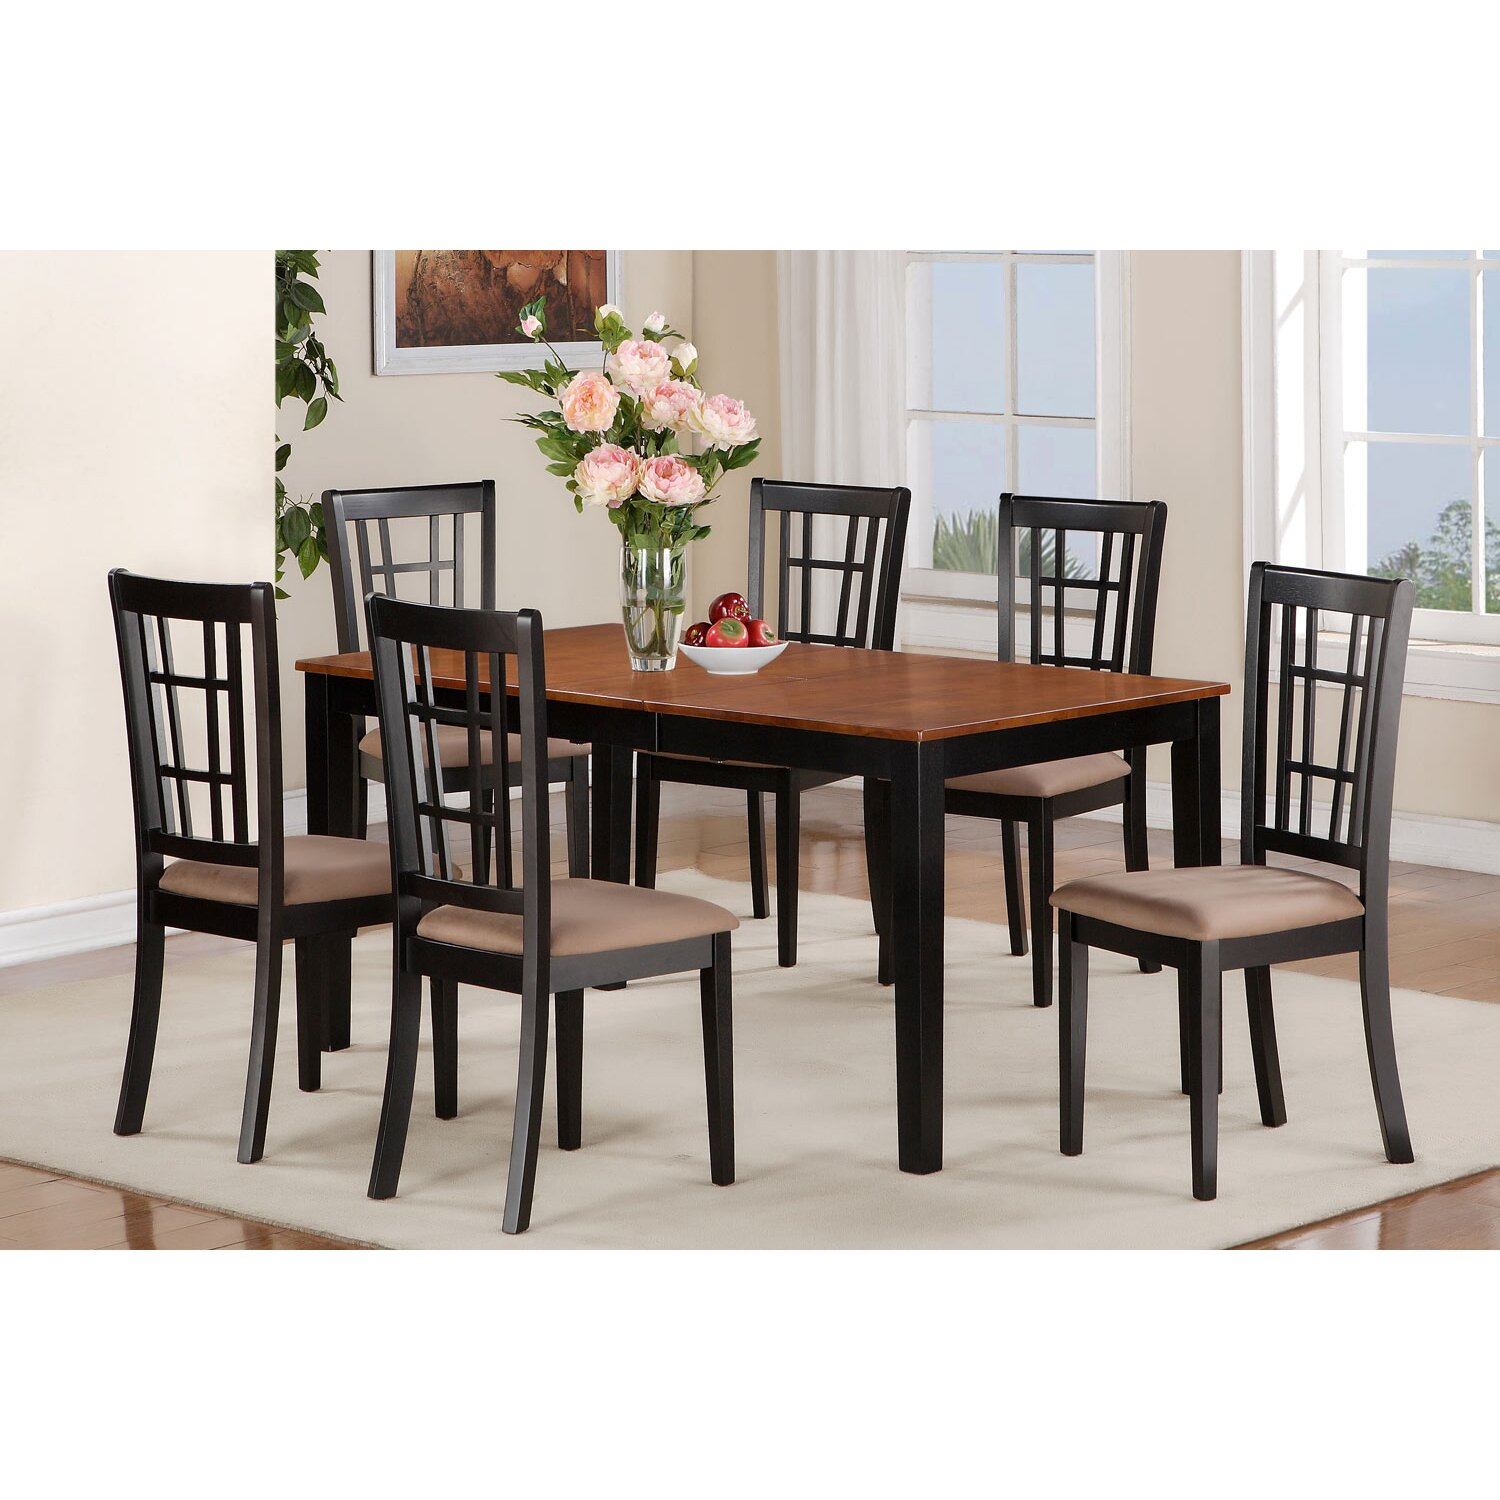 East west nicoli 7 piece dining set reviews wayfair for Dinette furniture